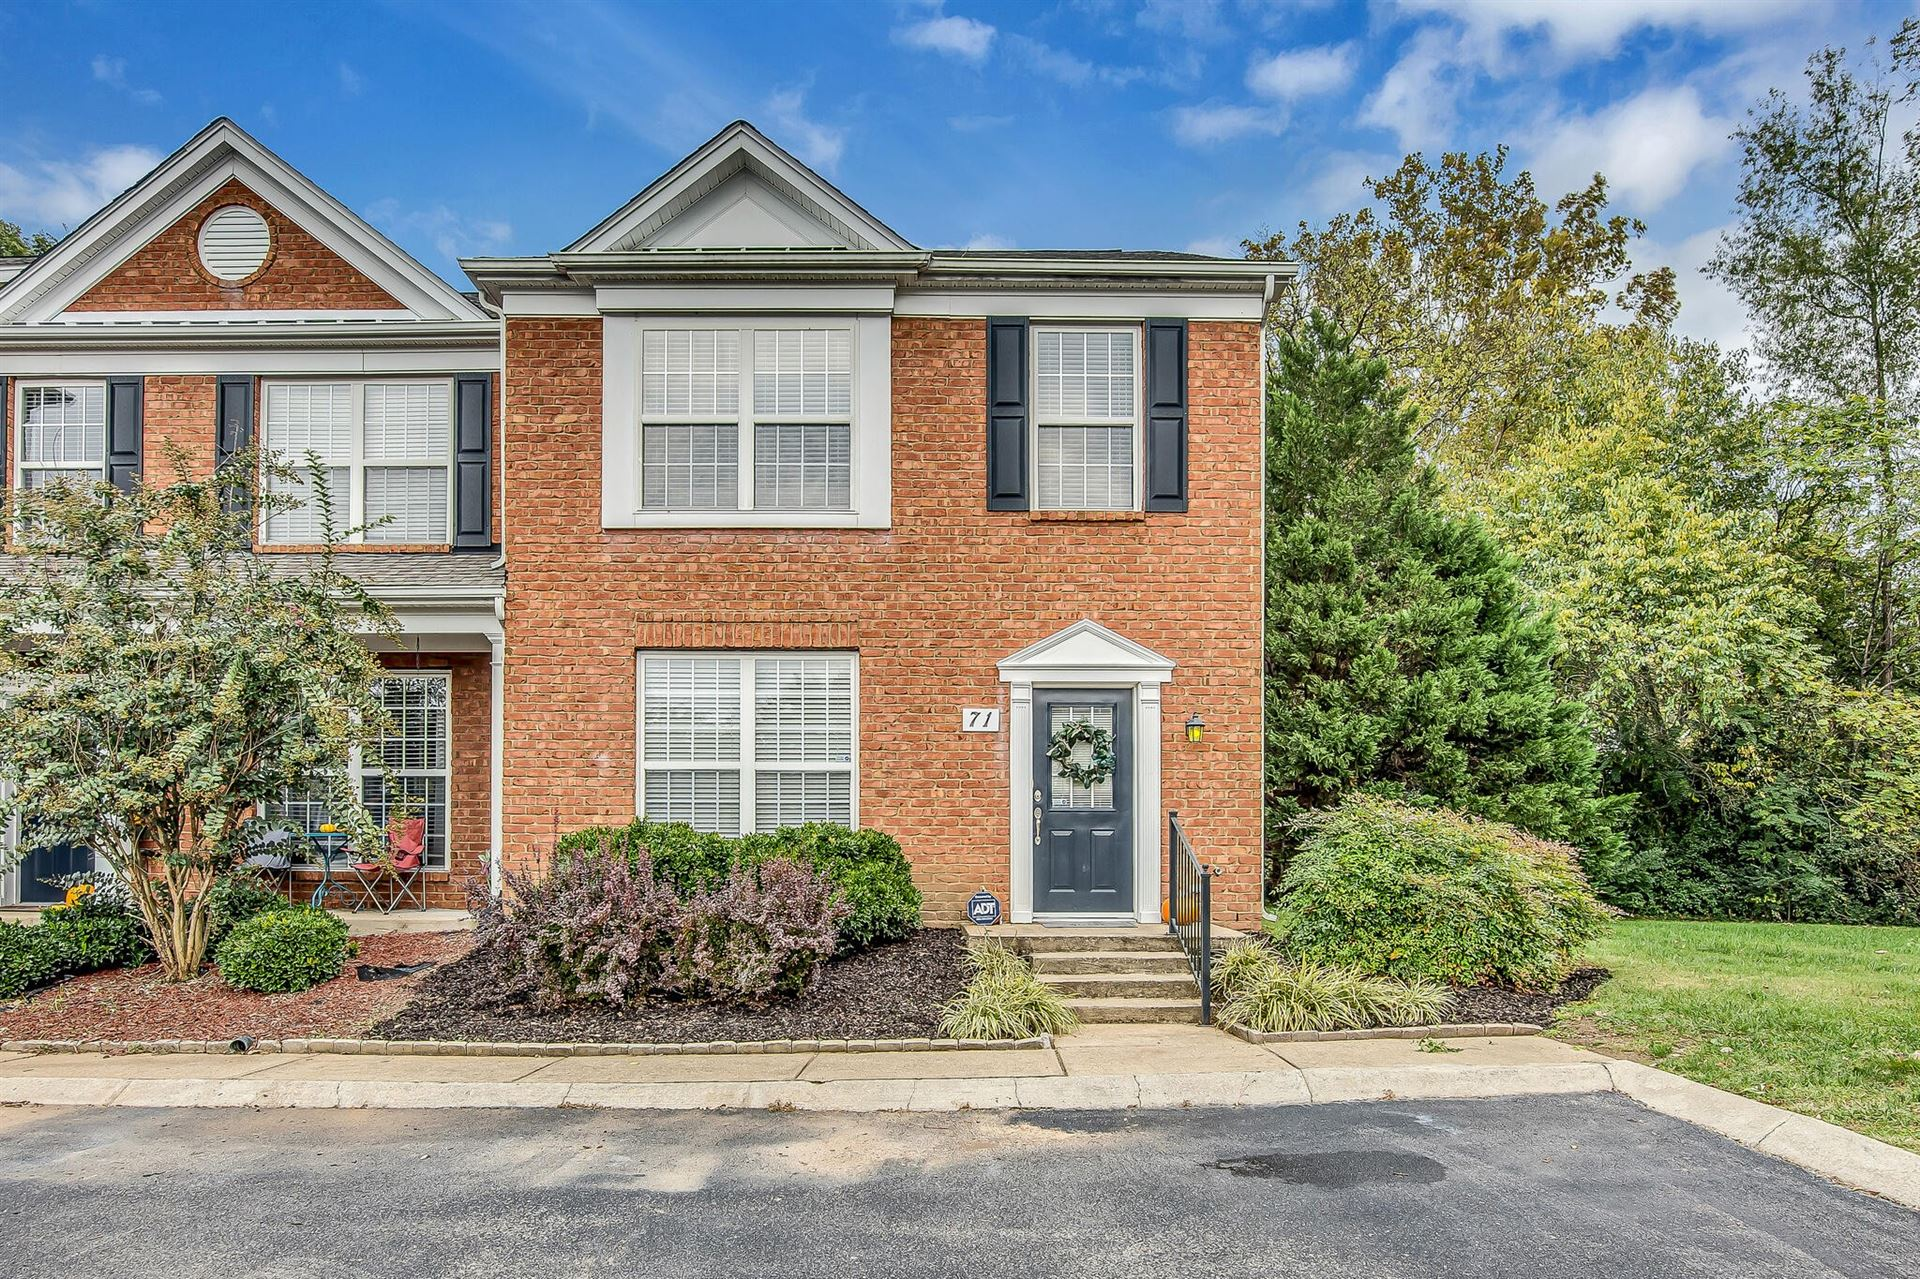 601 Old Hickory Blvd #71, Brentwood, TN 37027 - MLS#: 2200443